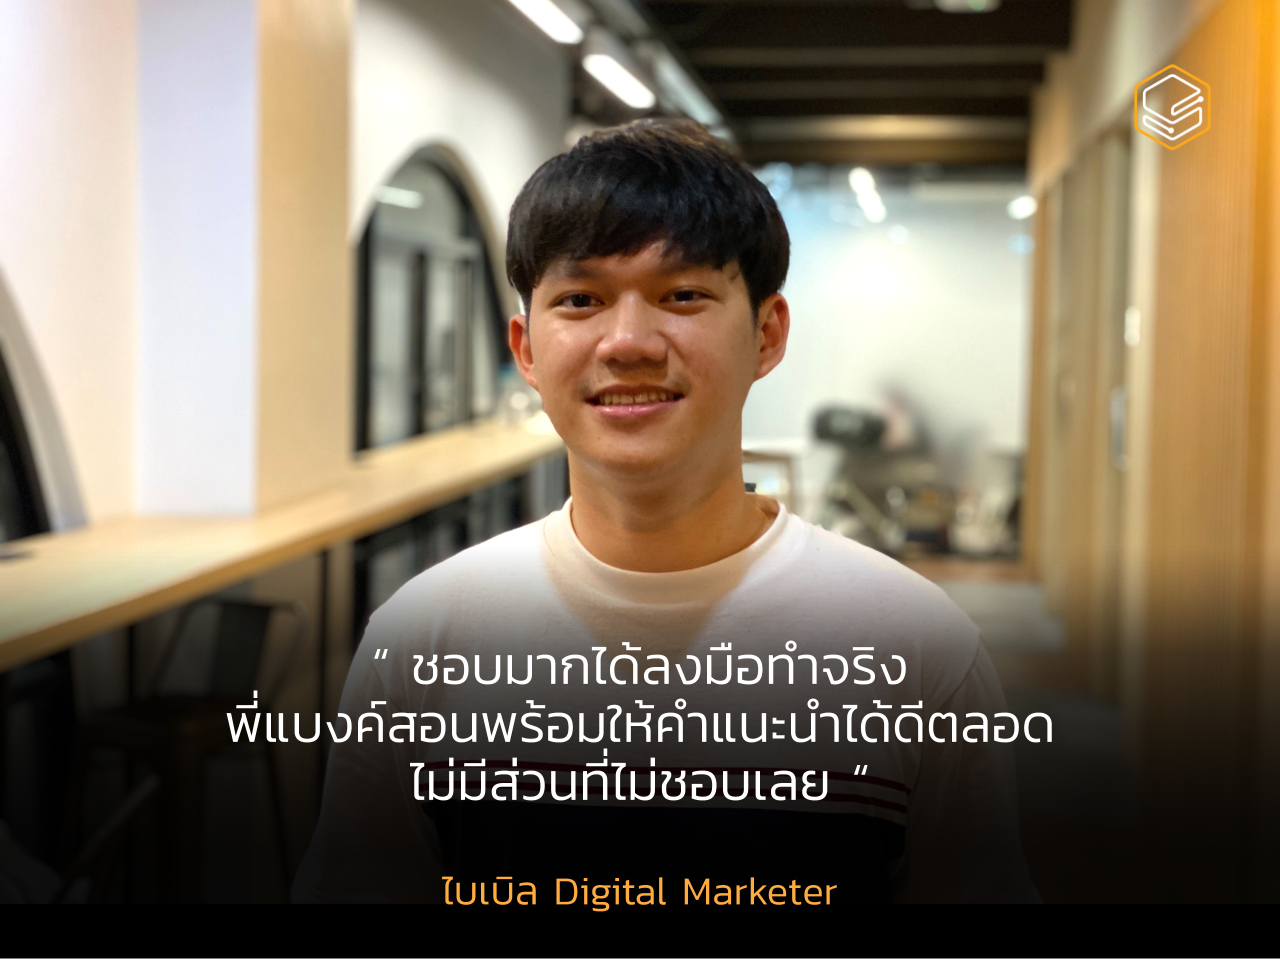 ไบเบิล - Digital Marketer  | Skooldio Workshop Testimonial: Intensive UI